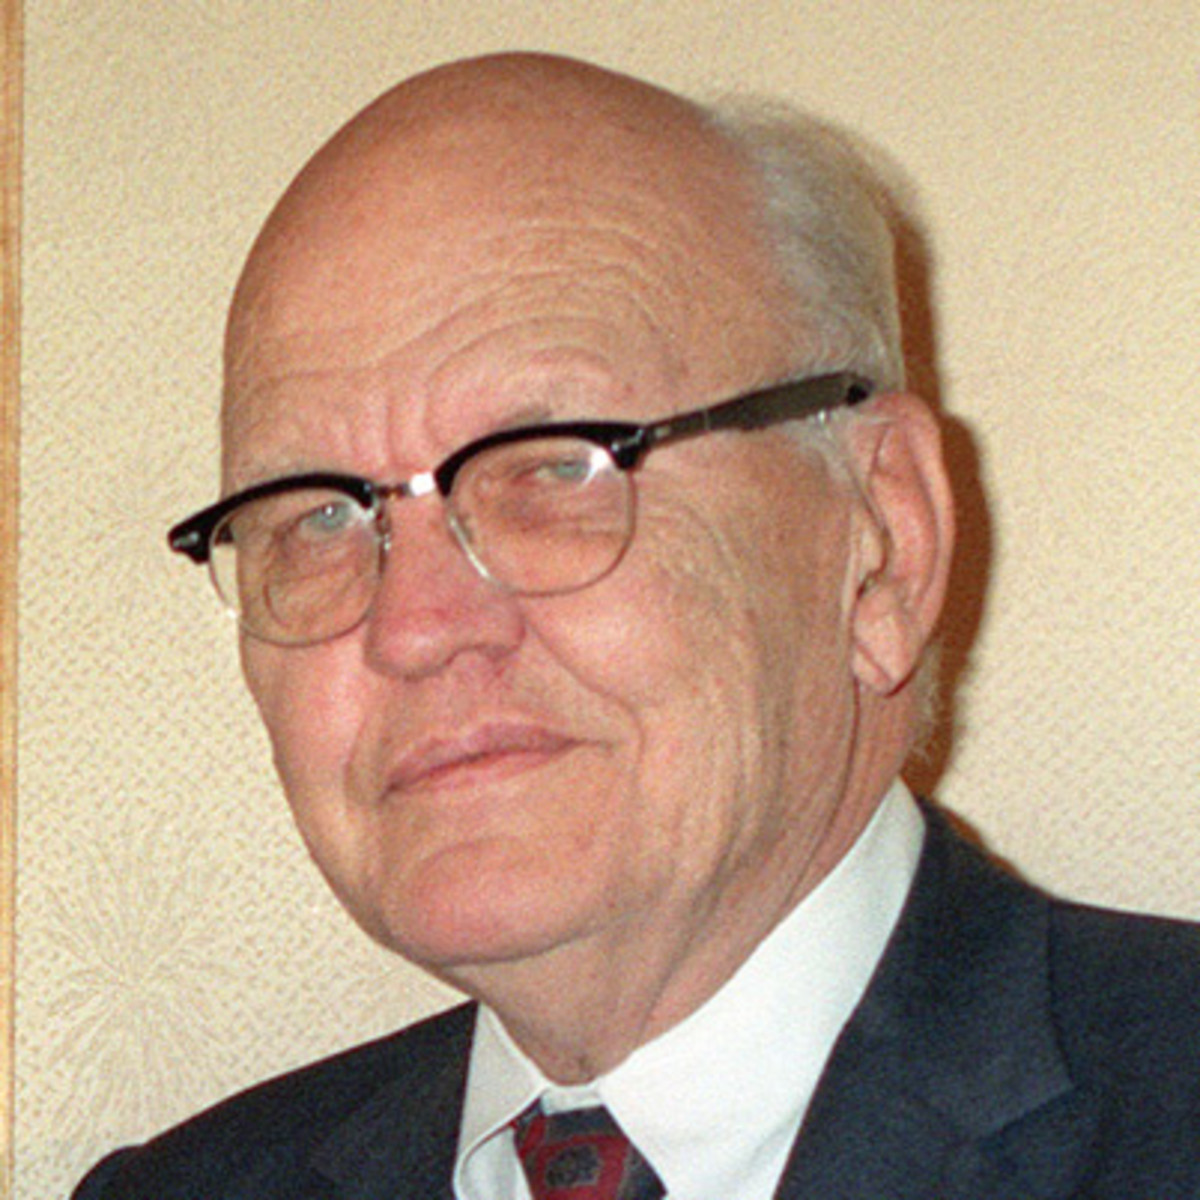 Jack Kilby - Engineer, Inventor - Biography.com